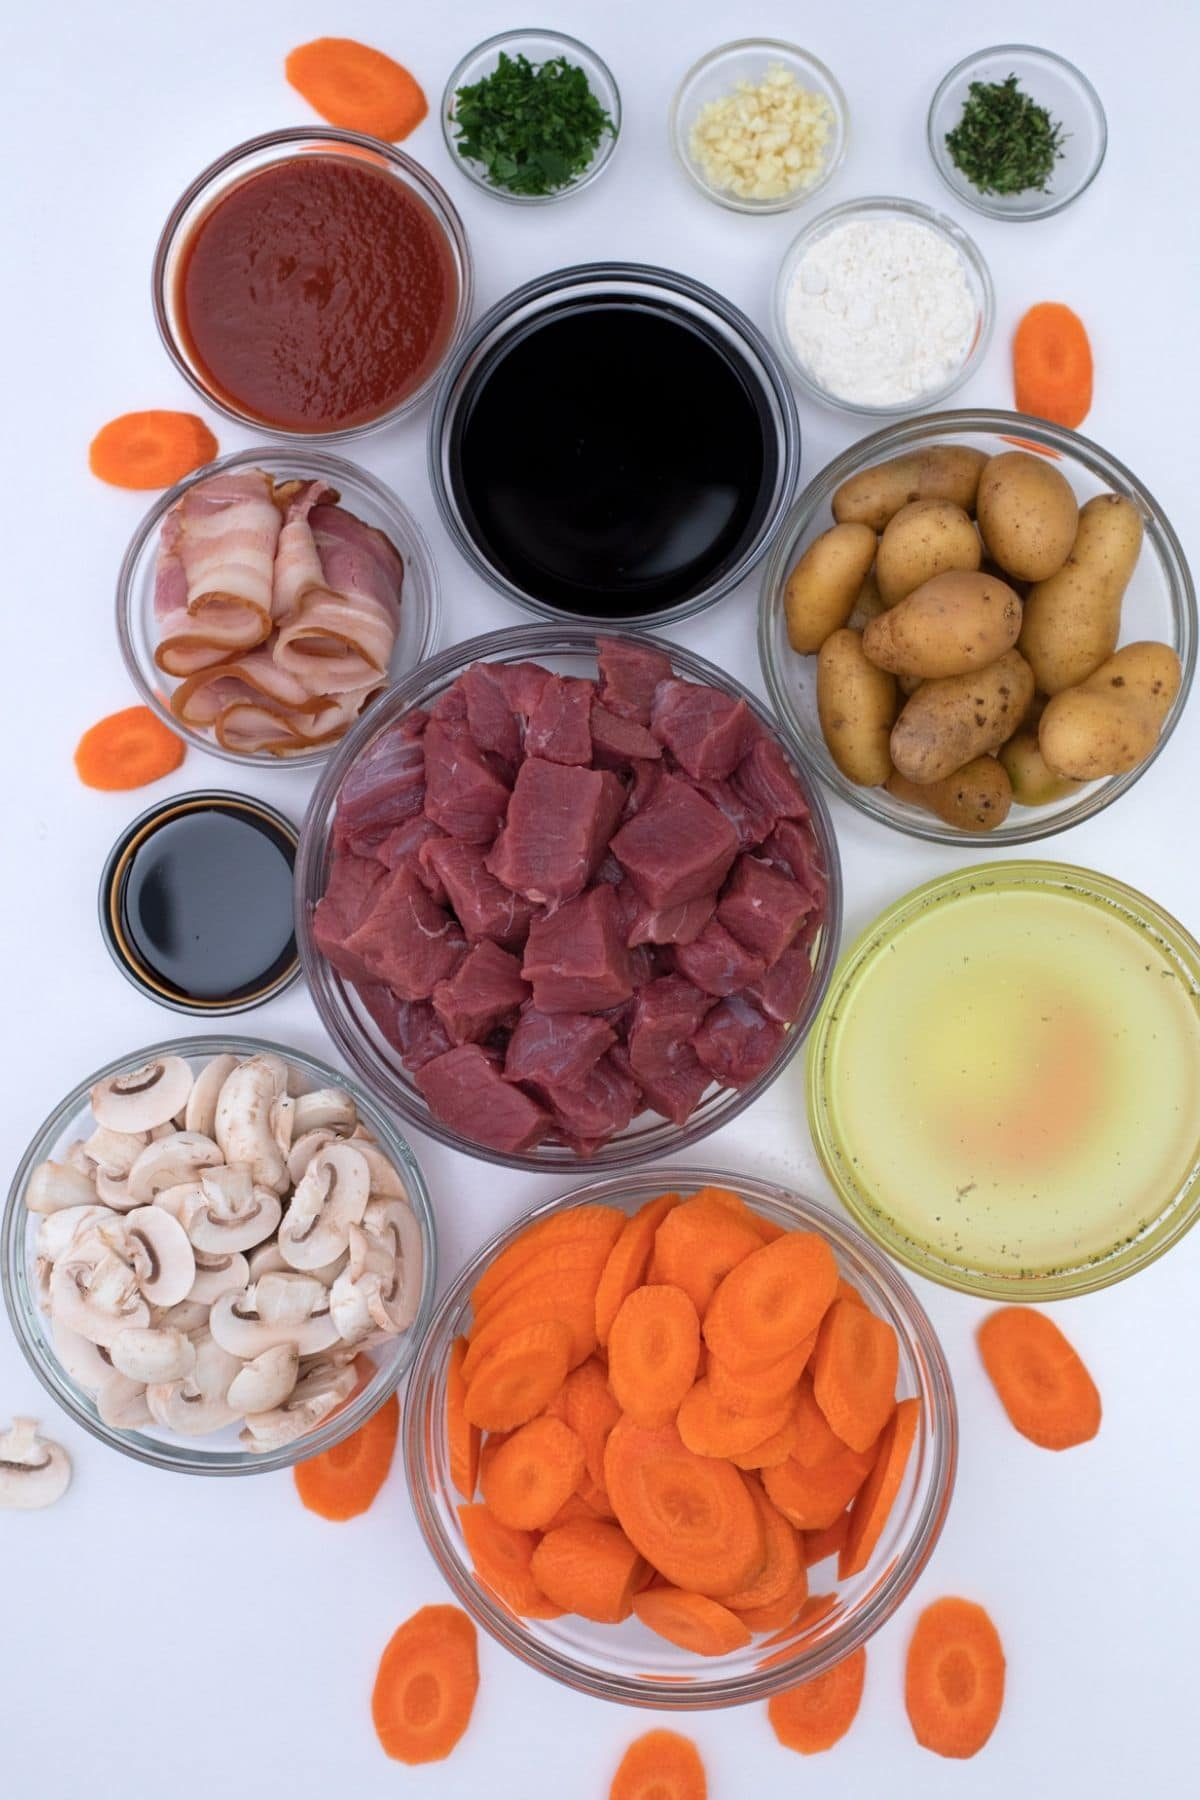 Ingredients for beef bourguignon in glass bowls on white table